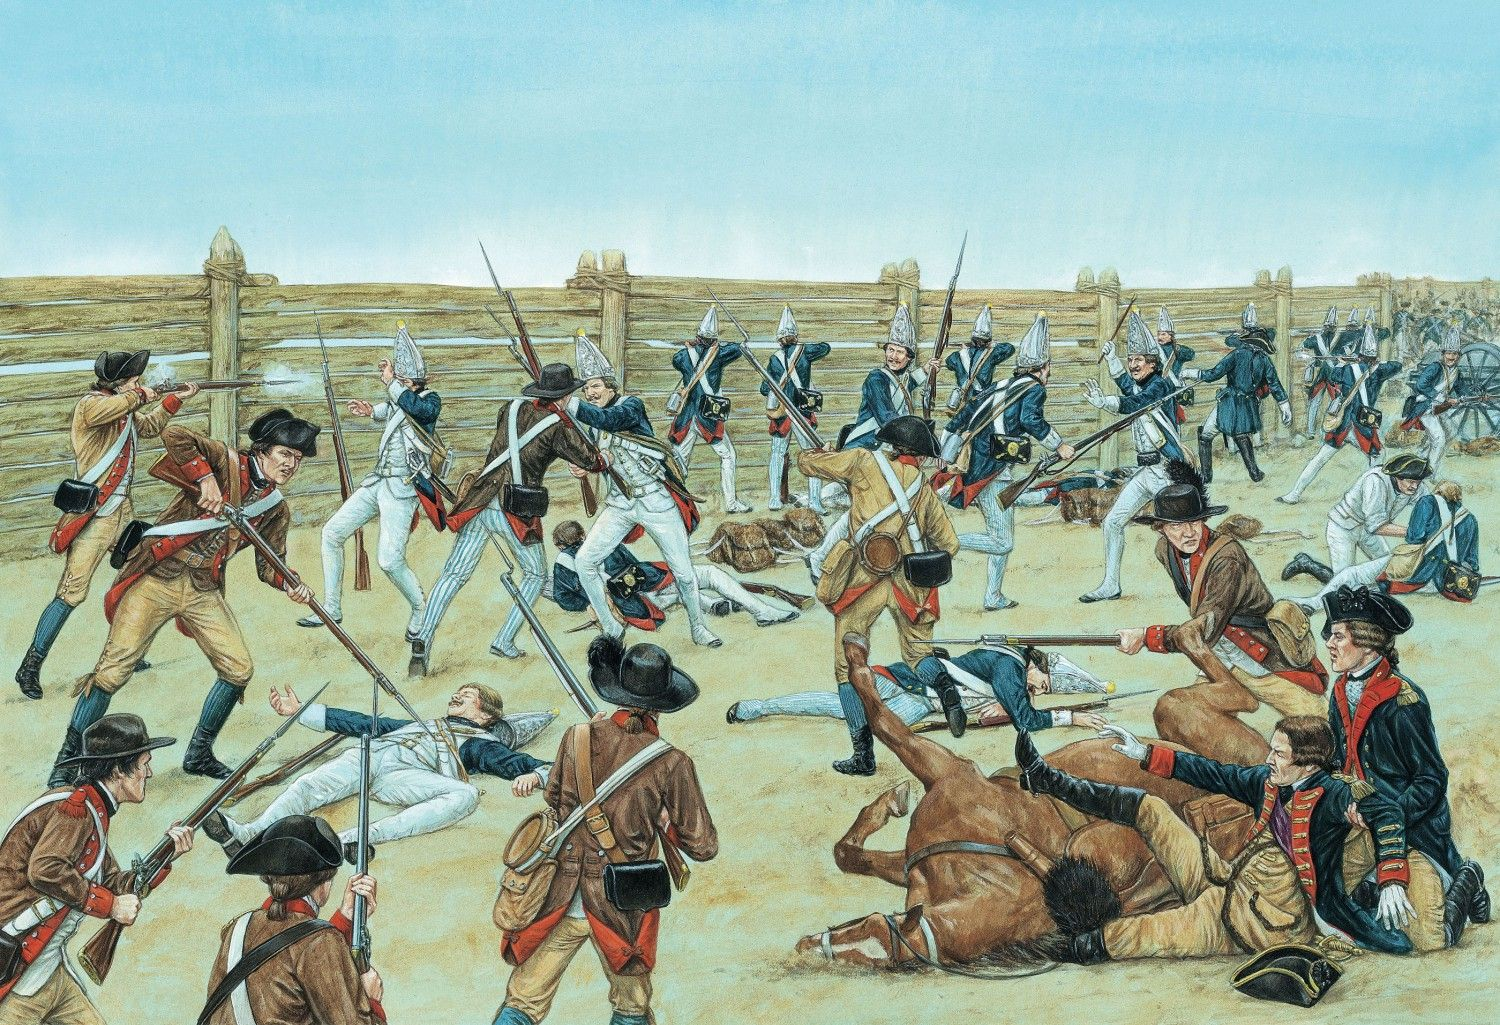 battle of saratoga The battle of saratoga is the turning point of the american revolutionary war the victory at battle of saratoga confirmed establishment of independent america.